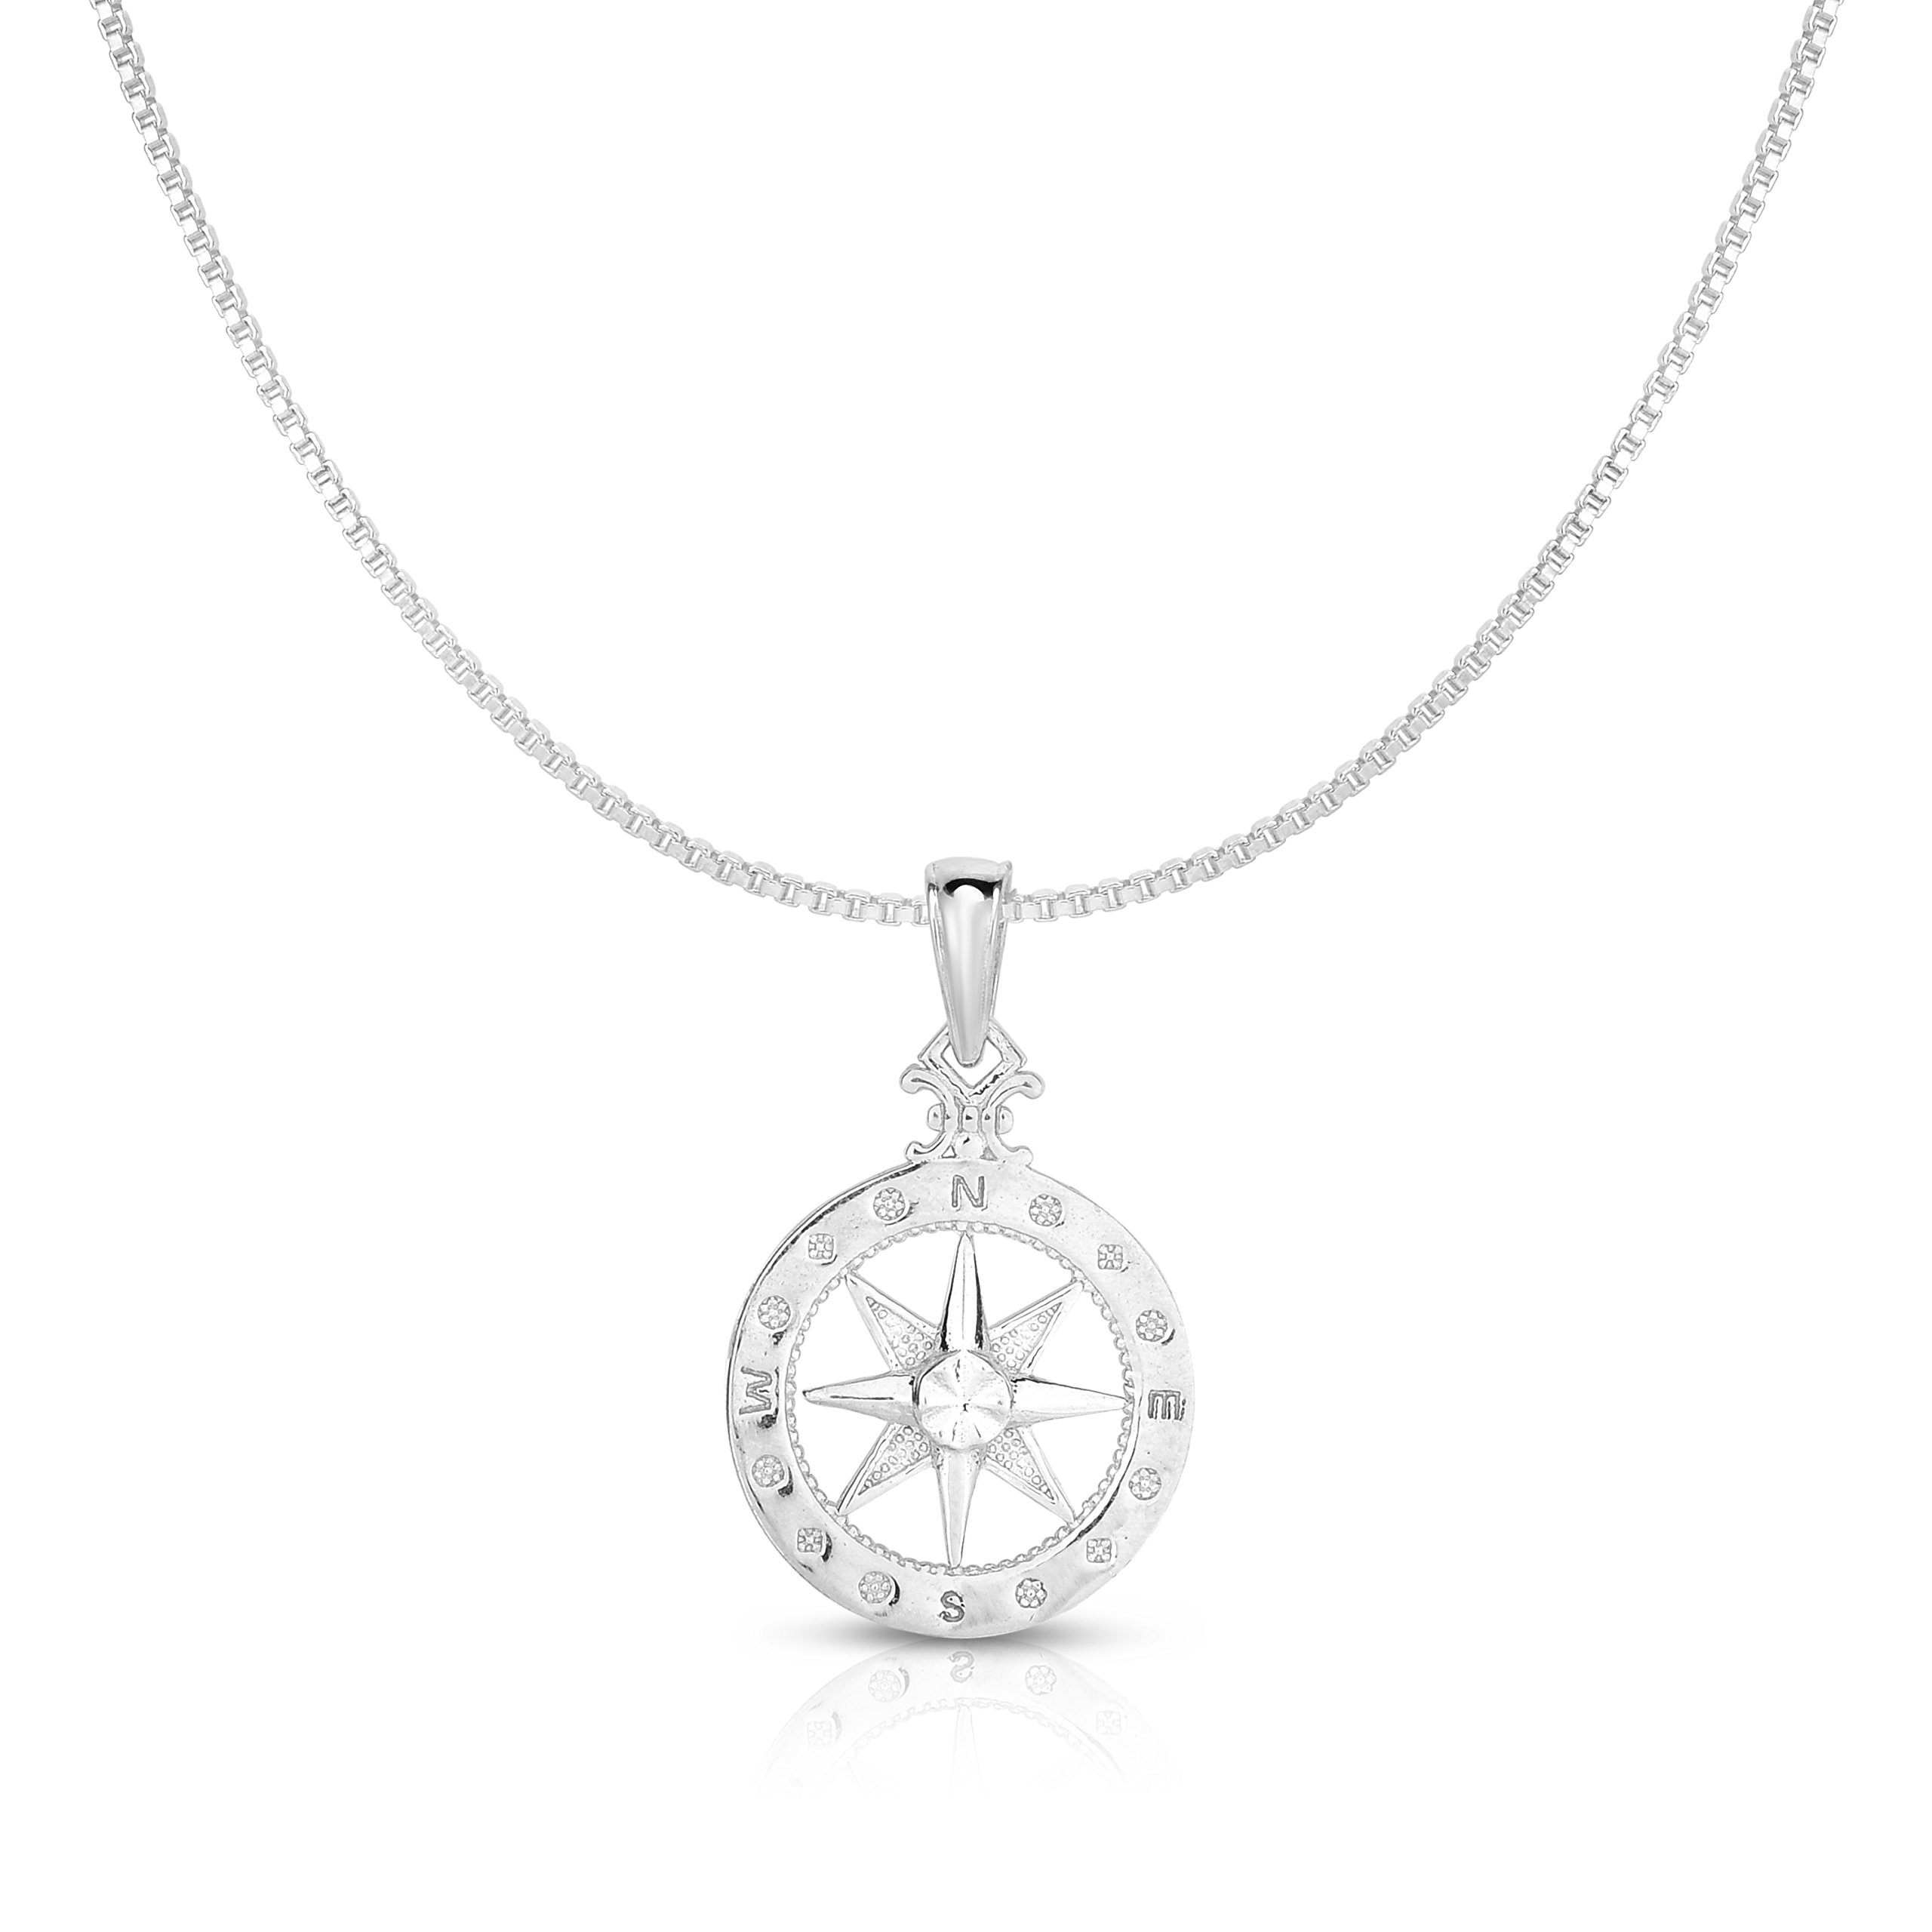 Unique Royal Jewelry 925 Solid Sterling Silver Small Compass Rose Pendant and Necklace. (18'' Inches)